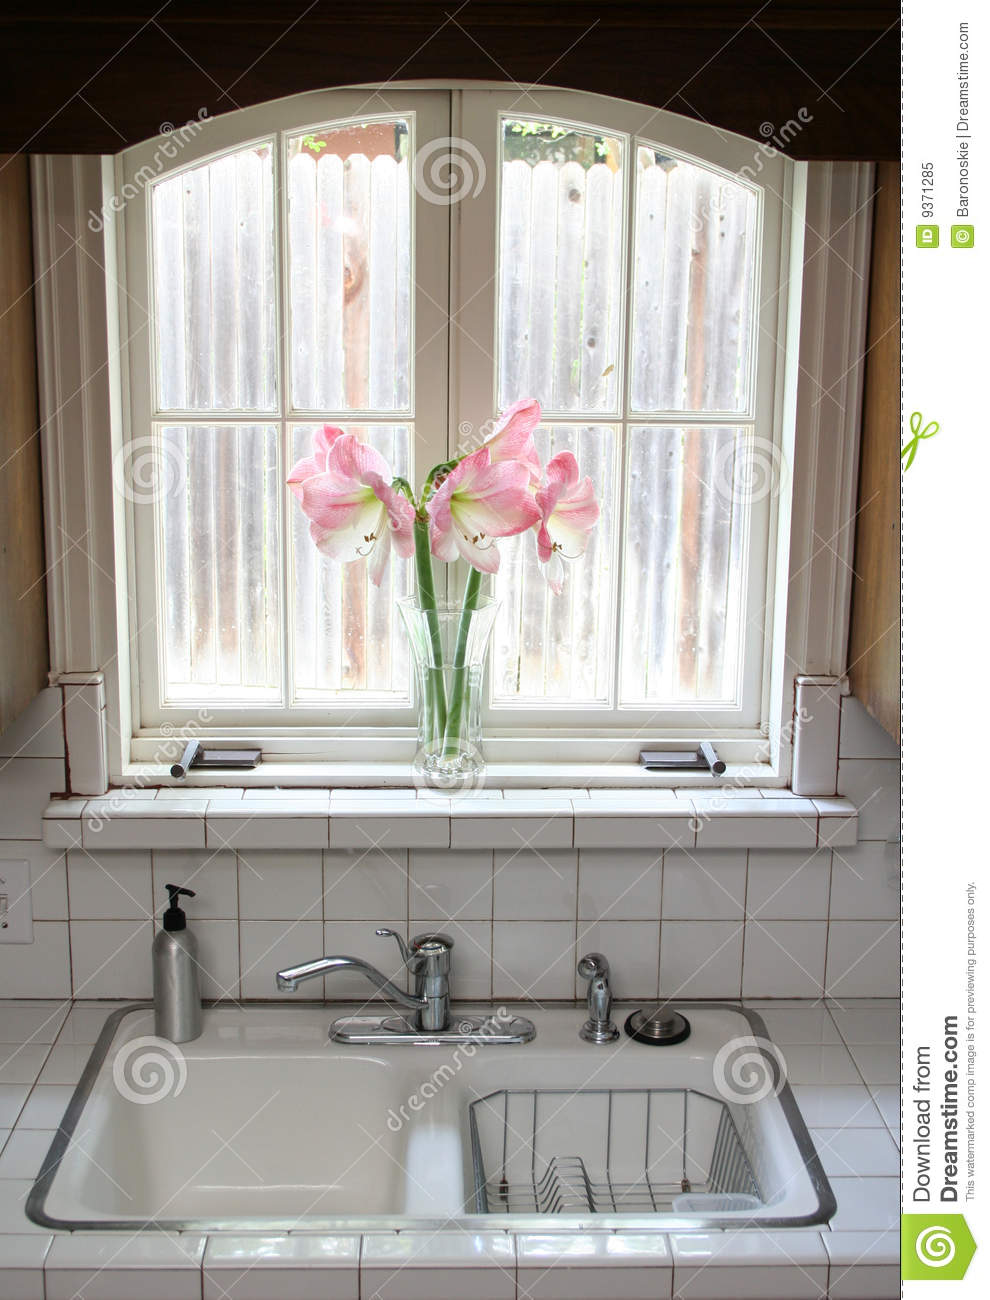 Kitchen Window Kitchen Window Royalty Free Stock Photo Image 9371285